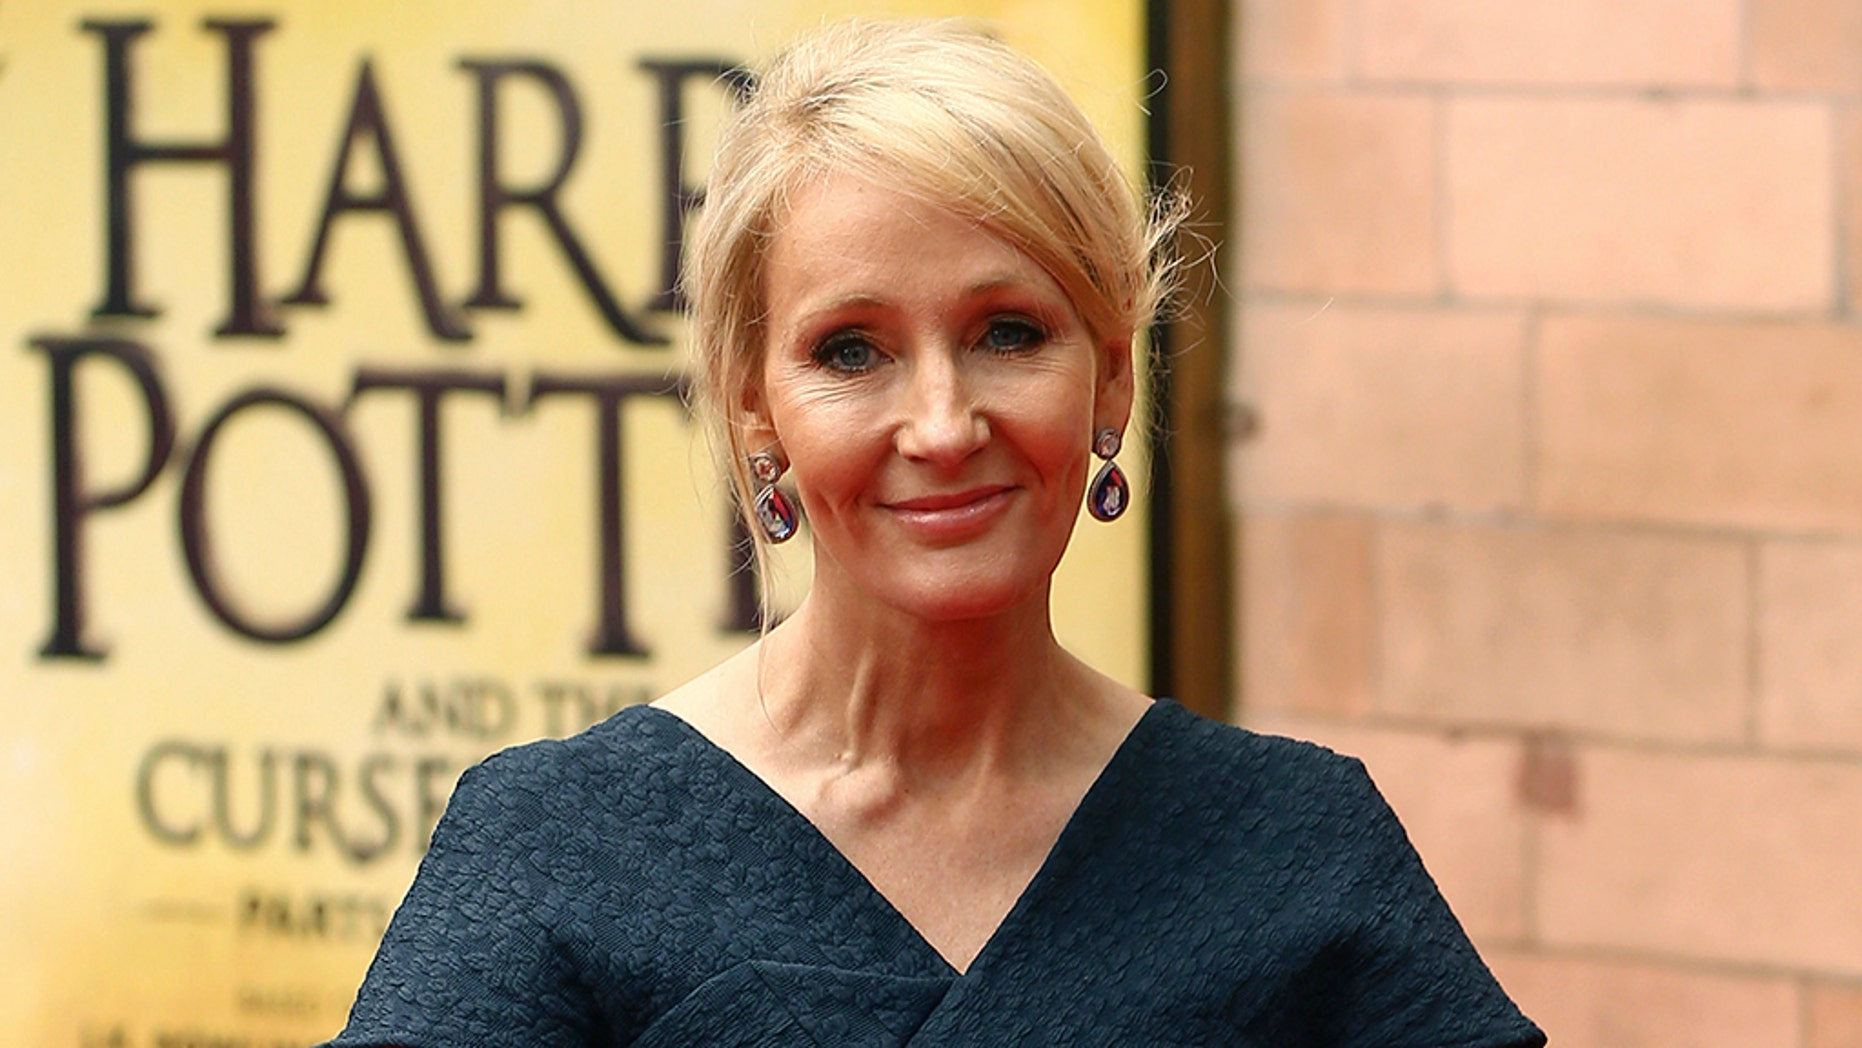 J.K. Rowling is facing backlash for recent comments she made about the sexuality of Dumbledore and Grindelwald in an interview for DVD and Blu-ray features on her film